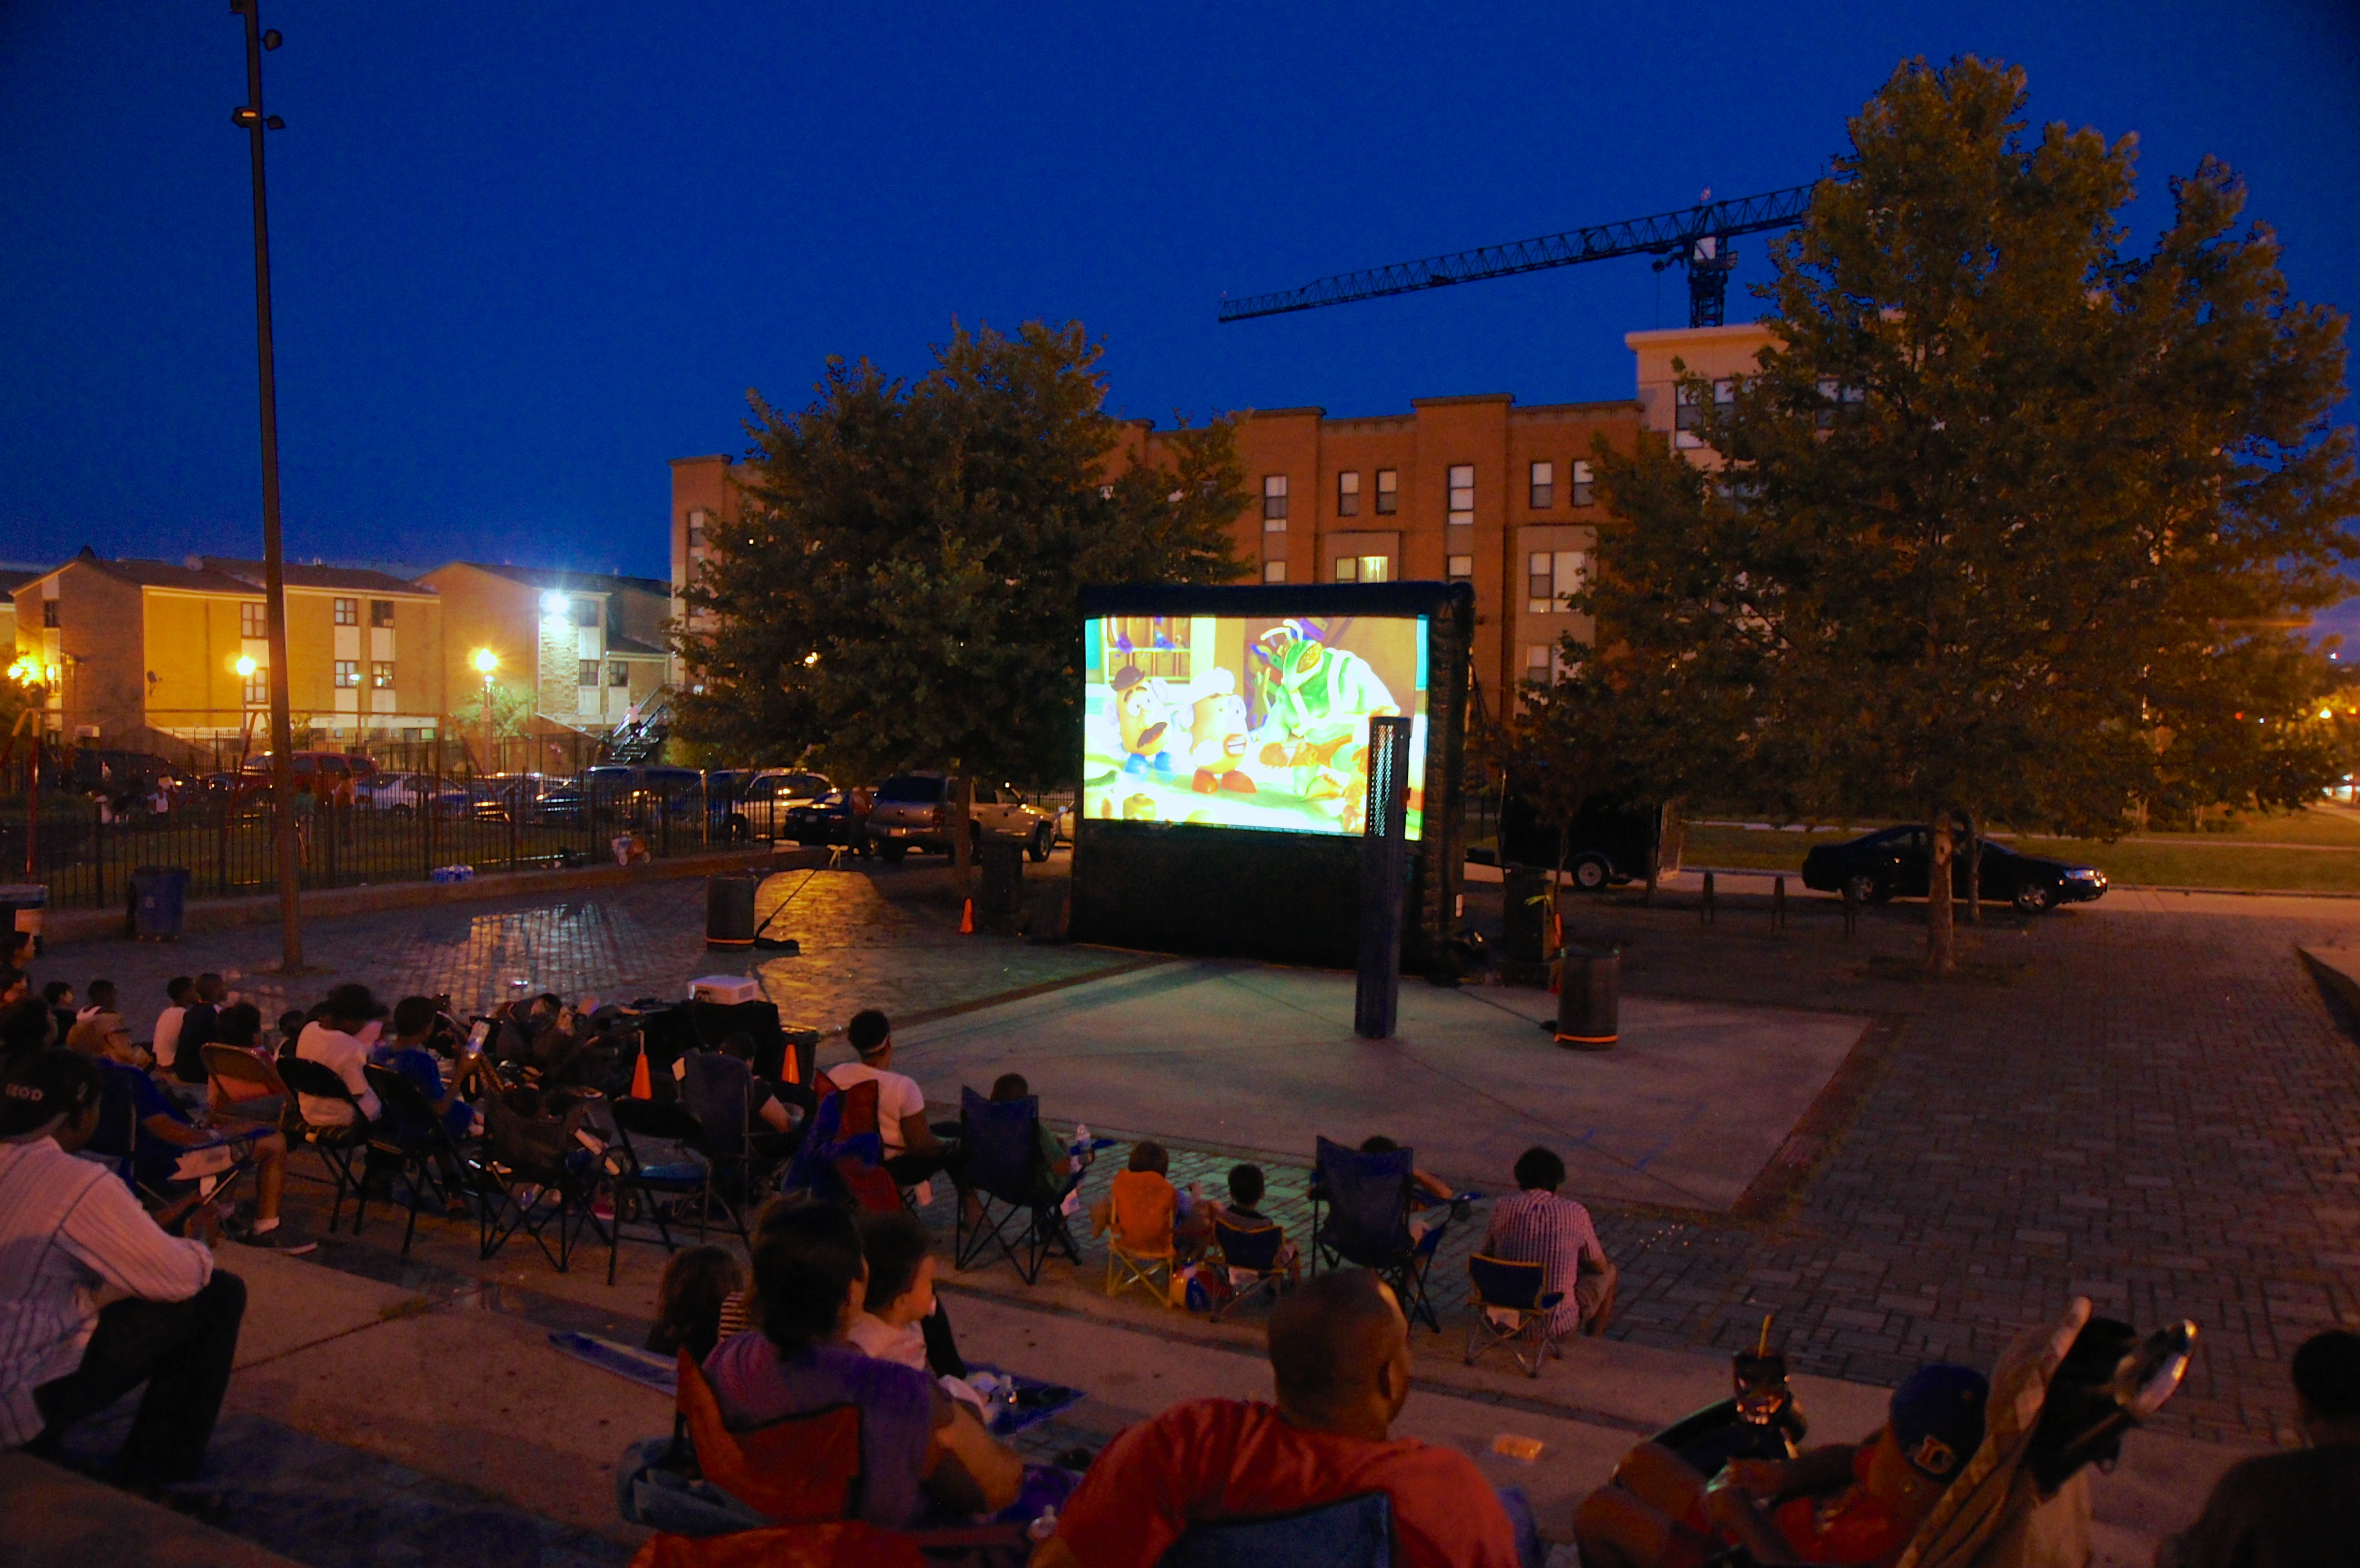 """NoMa Summer Screens summer film series features films about """"Unlikely Friendships."""" (Photo: NoMa Business Improvement District)"""